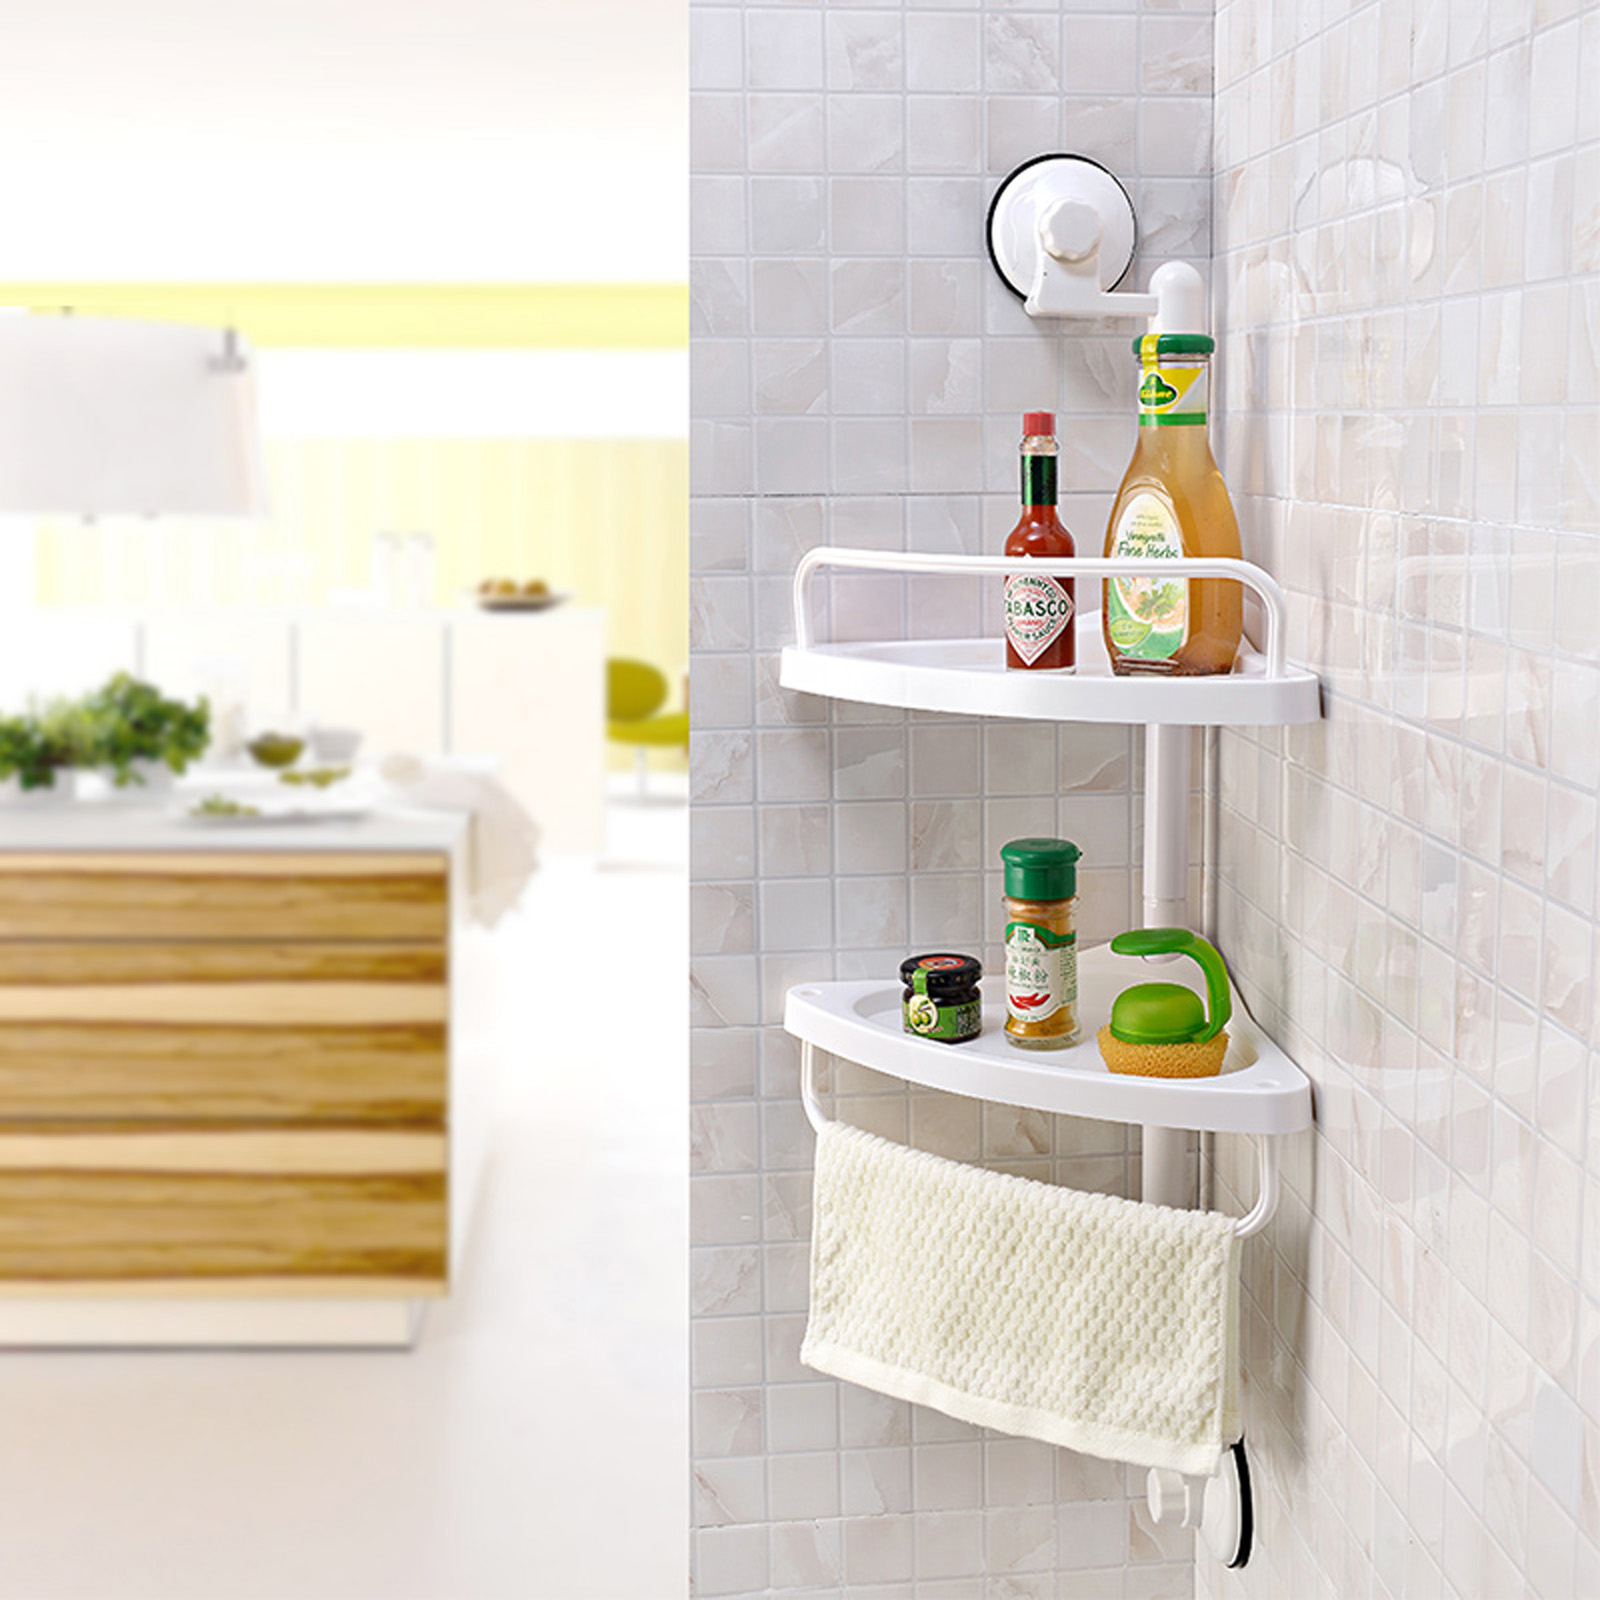 Details about 2Tier Bathroom Bathtub Shower Caddy Holder Corner Rack Shelf Organizer Accessory